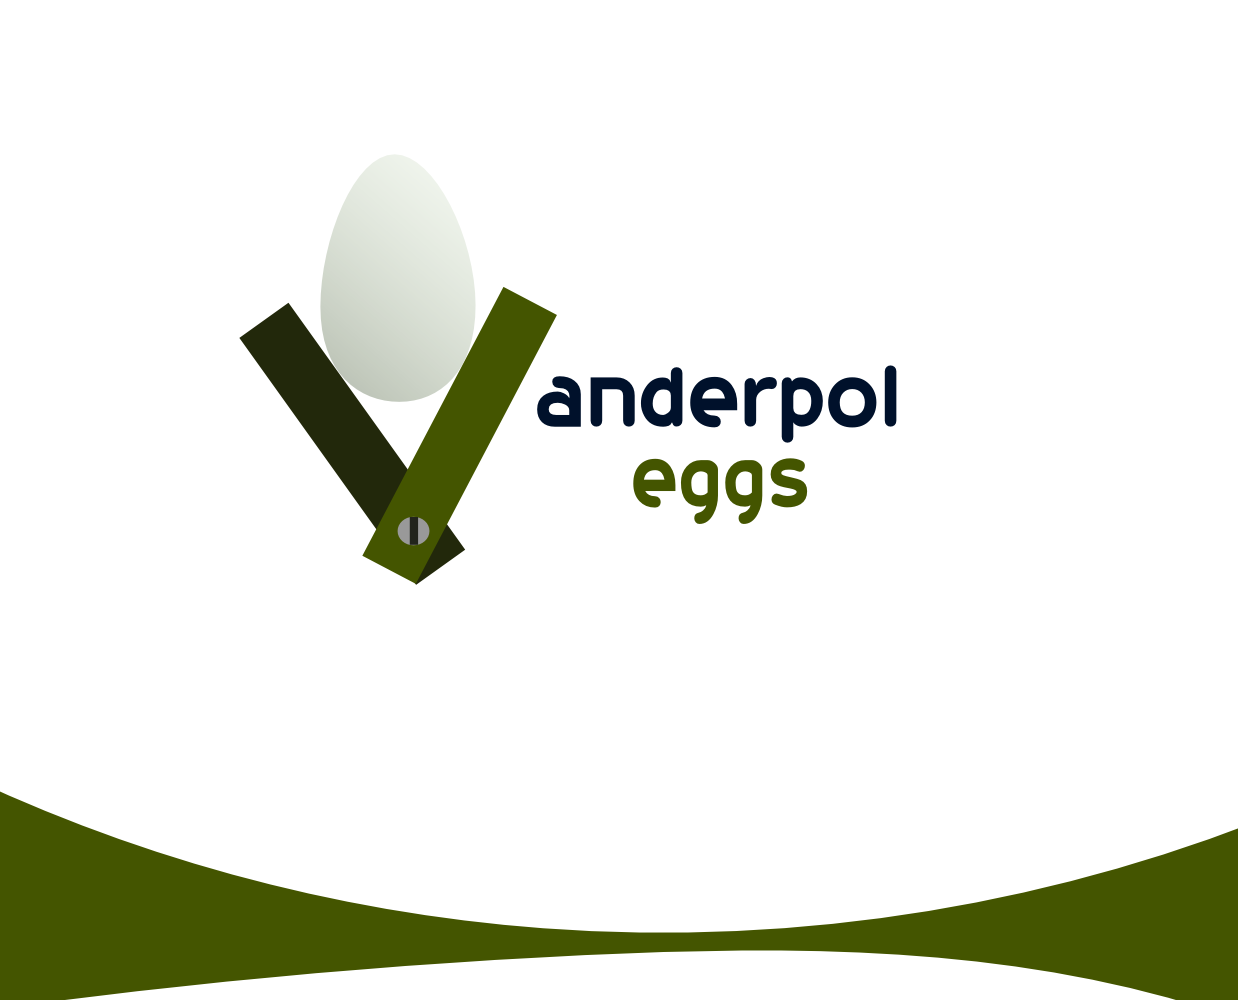 Logo Design by Arindam Khanda - Entry No. 66 in the Logo Design Contest Creative Logo Design for Vanderpol Food Group.